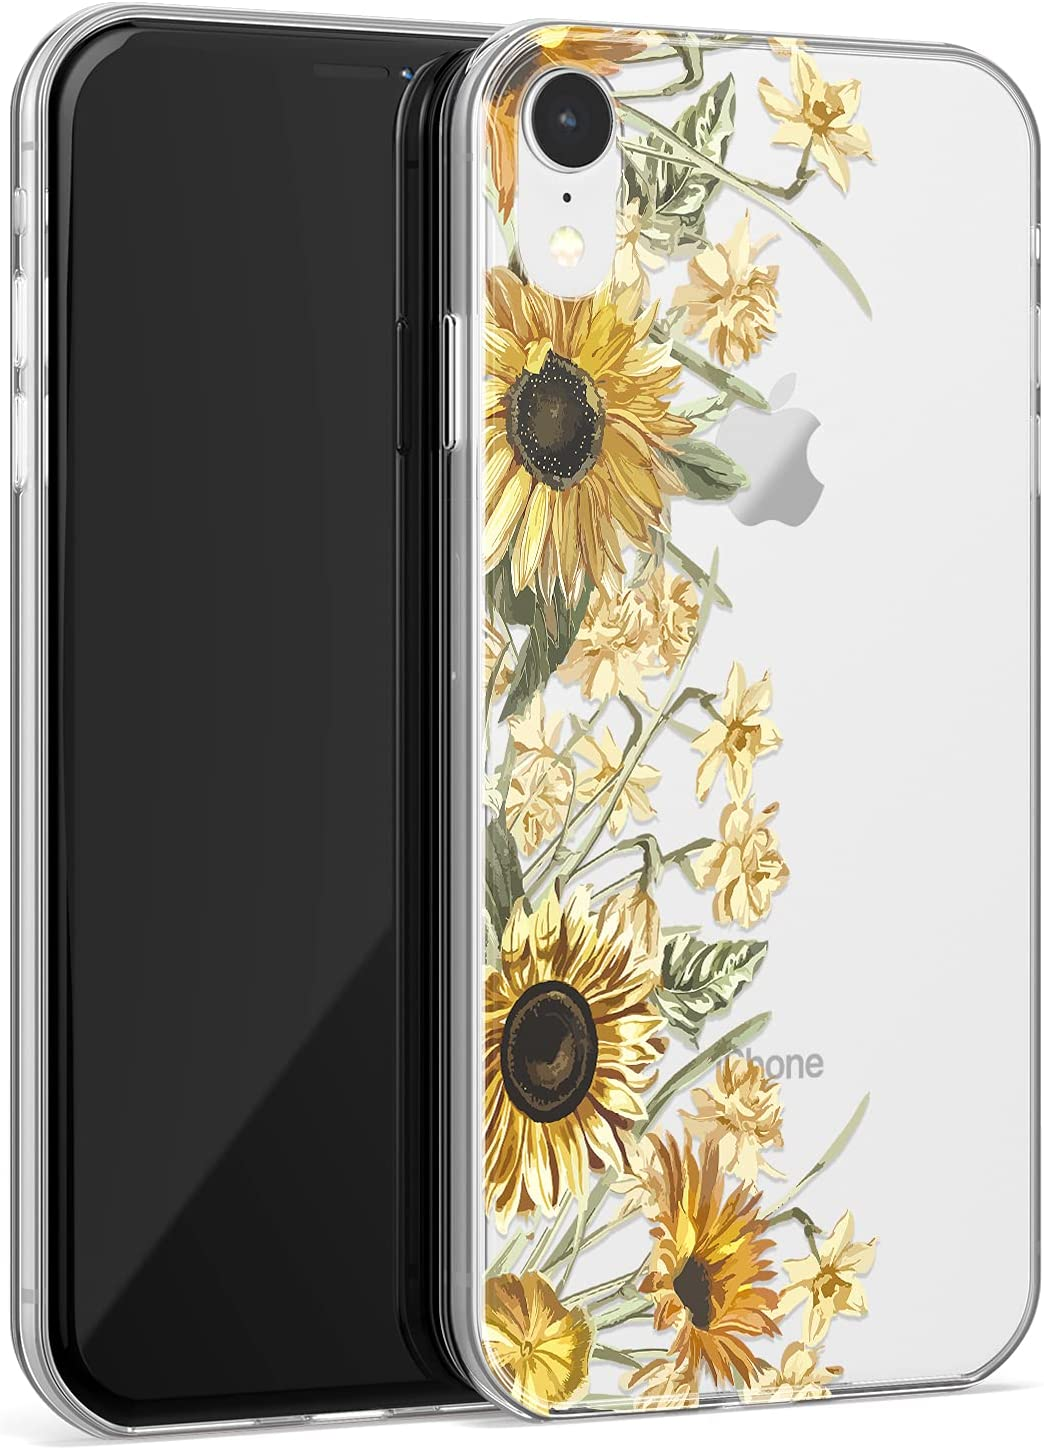 iPhone XR Case with Screen Protector,Clear Cover with Sunflowers and Yellow Floral Patterns for Girls Women,Shockproof Protective Phone Case for iPhone XR 6.1 Inch